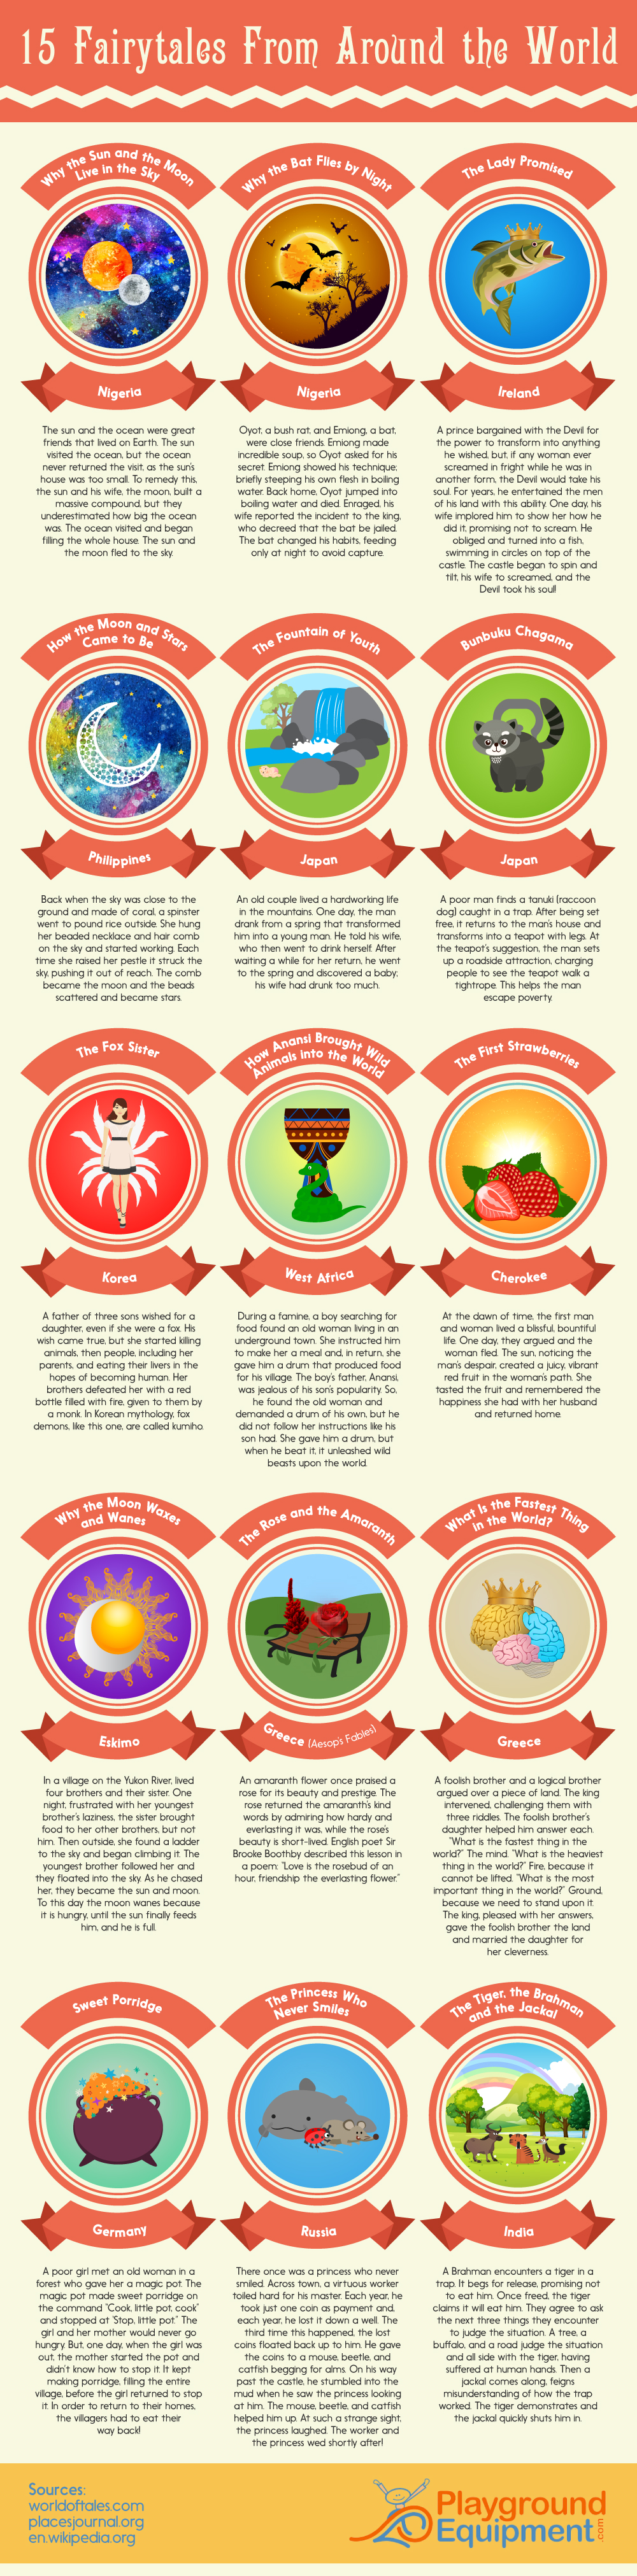 15 Fairytales From Around the World - PlaygroundEquipment.com - Infographic